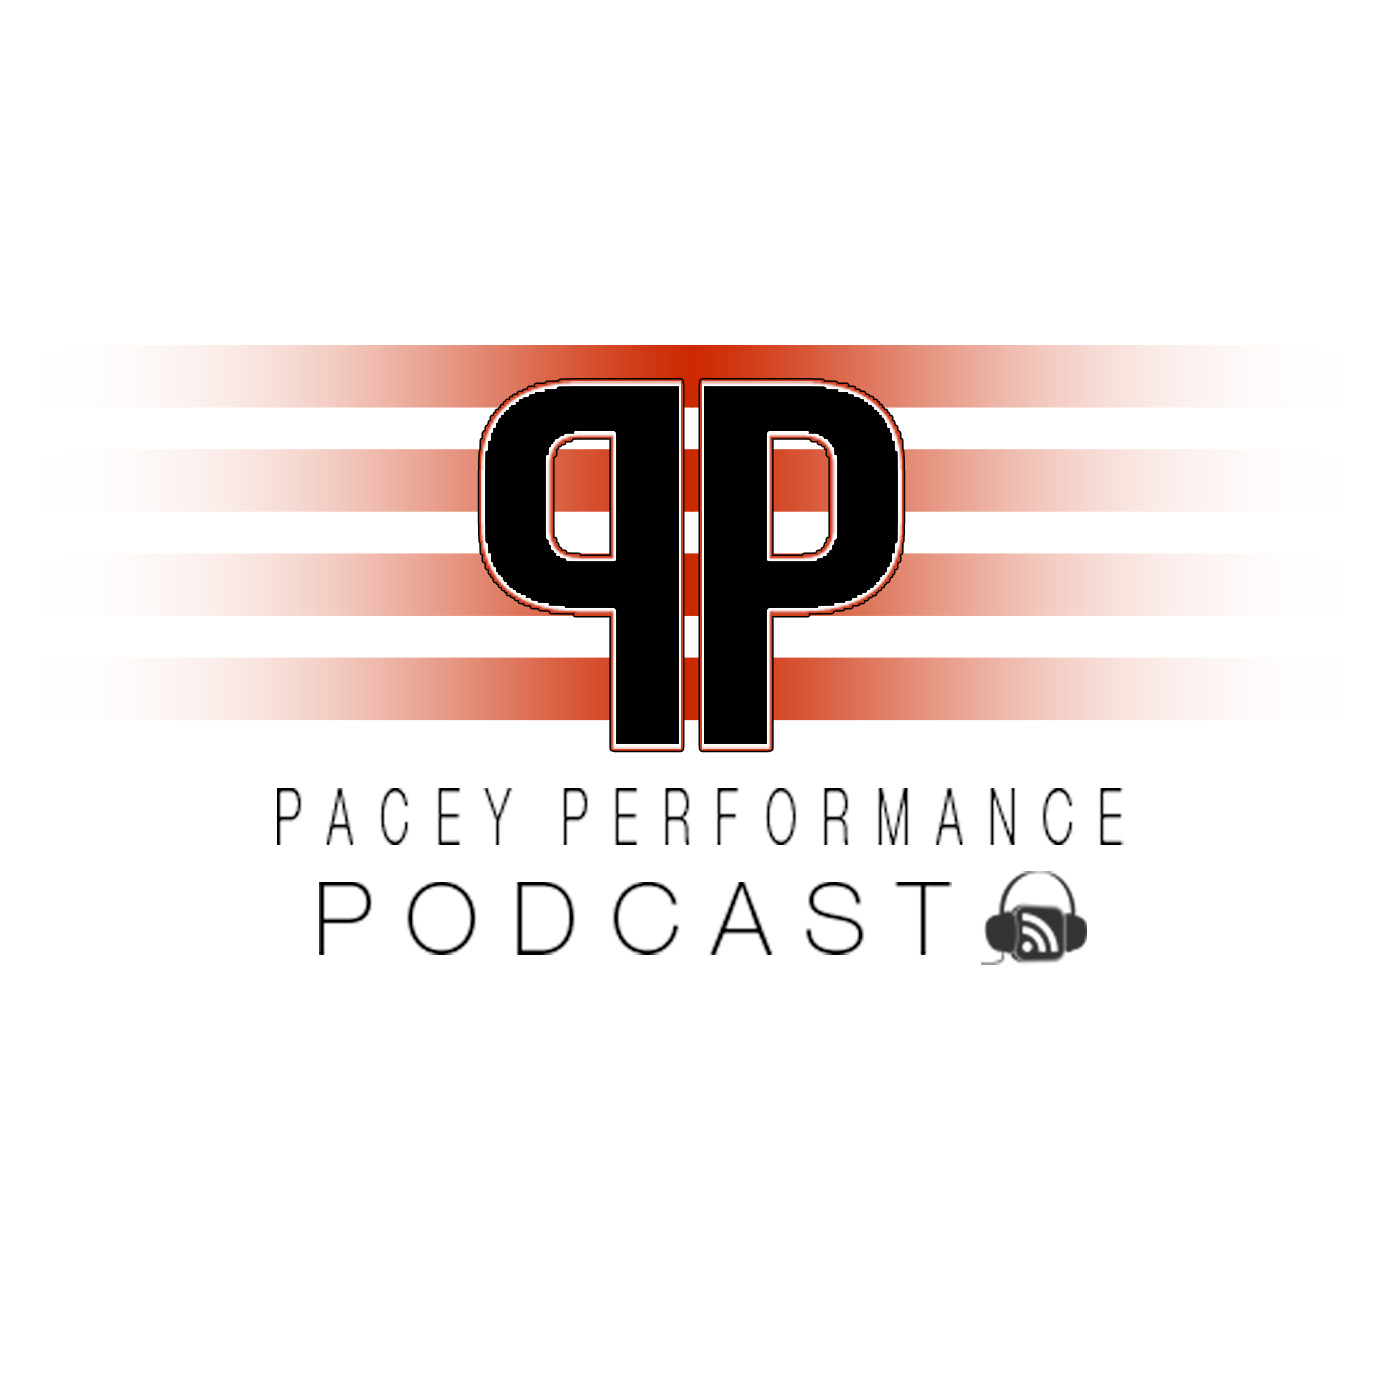 Pacey Performance Podcast #21 - Special 'Football' Edition